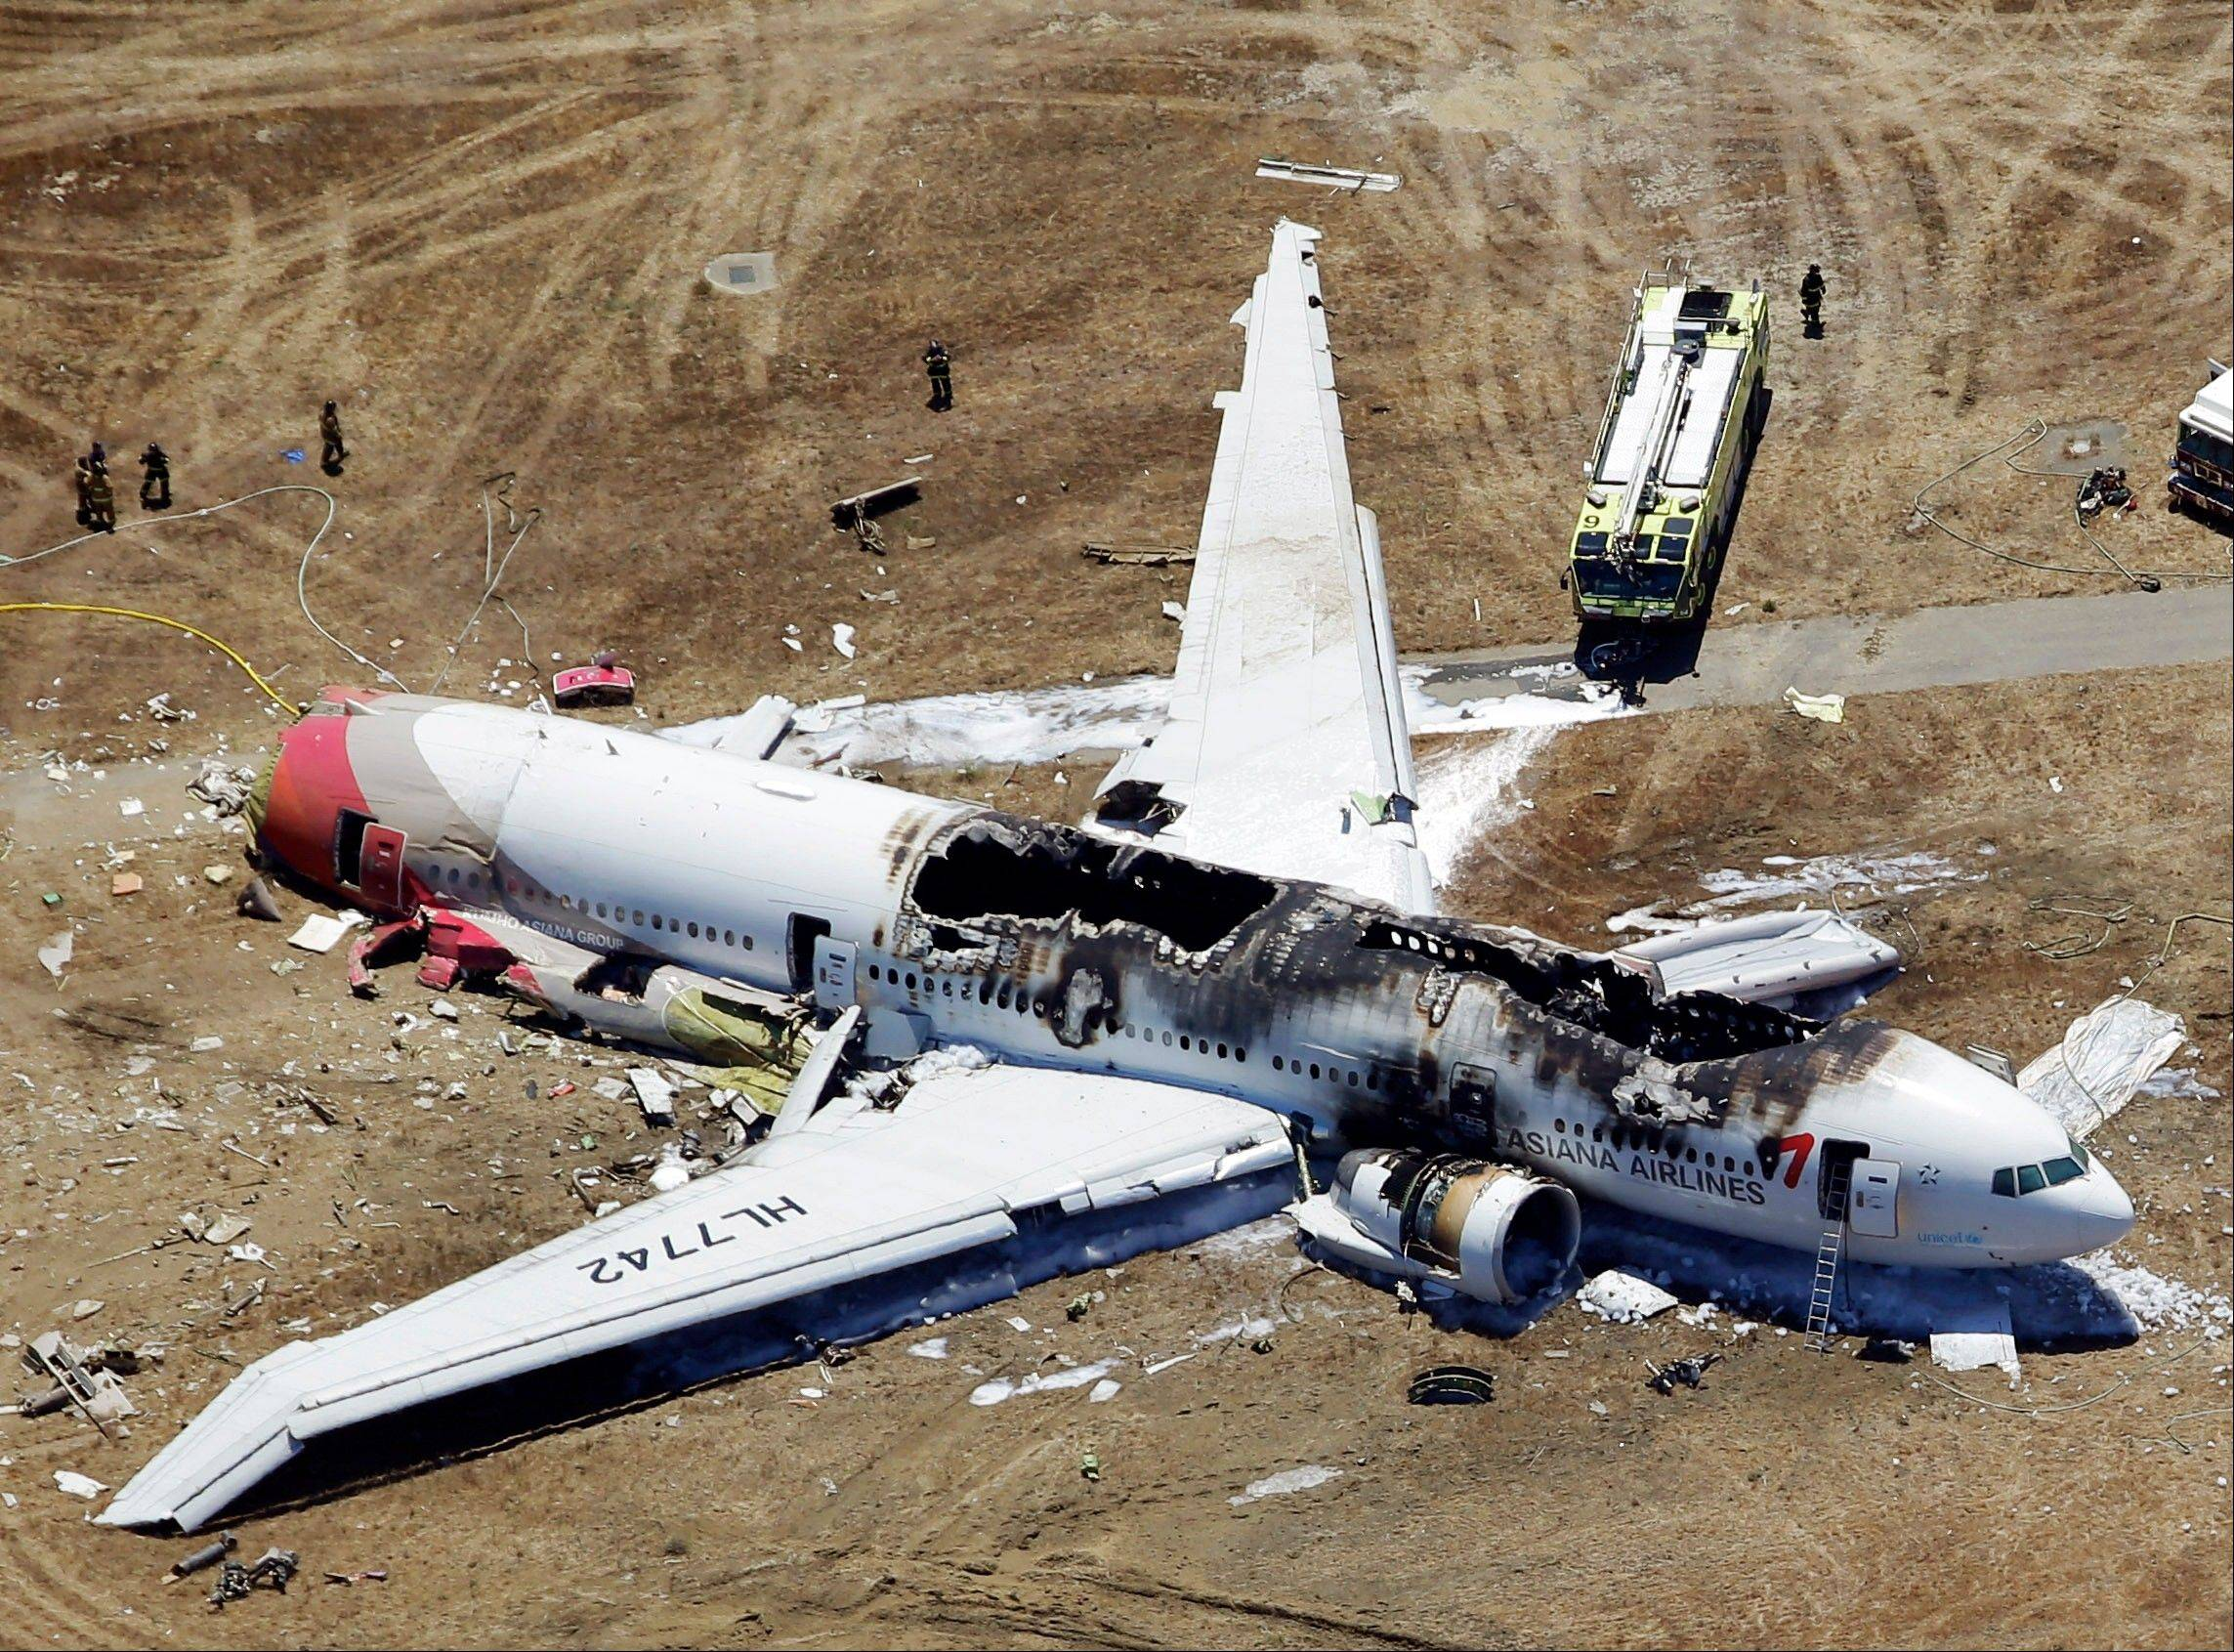 The wreckage of the Asiana Flight 214 airplane after it crashed at the San Francisco International Airport in San Francisco.